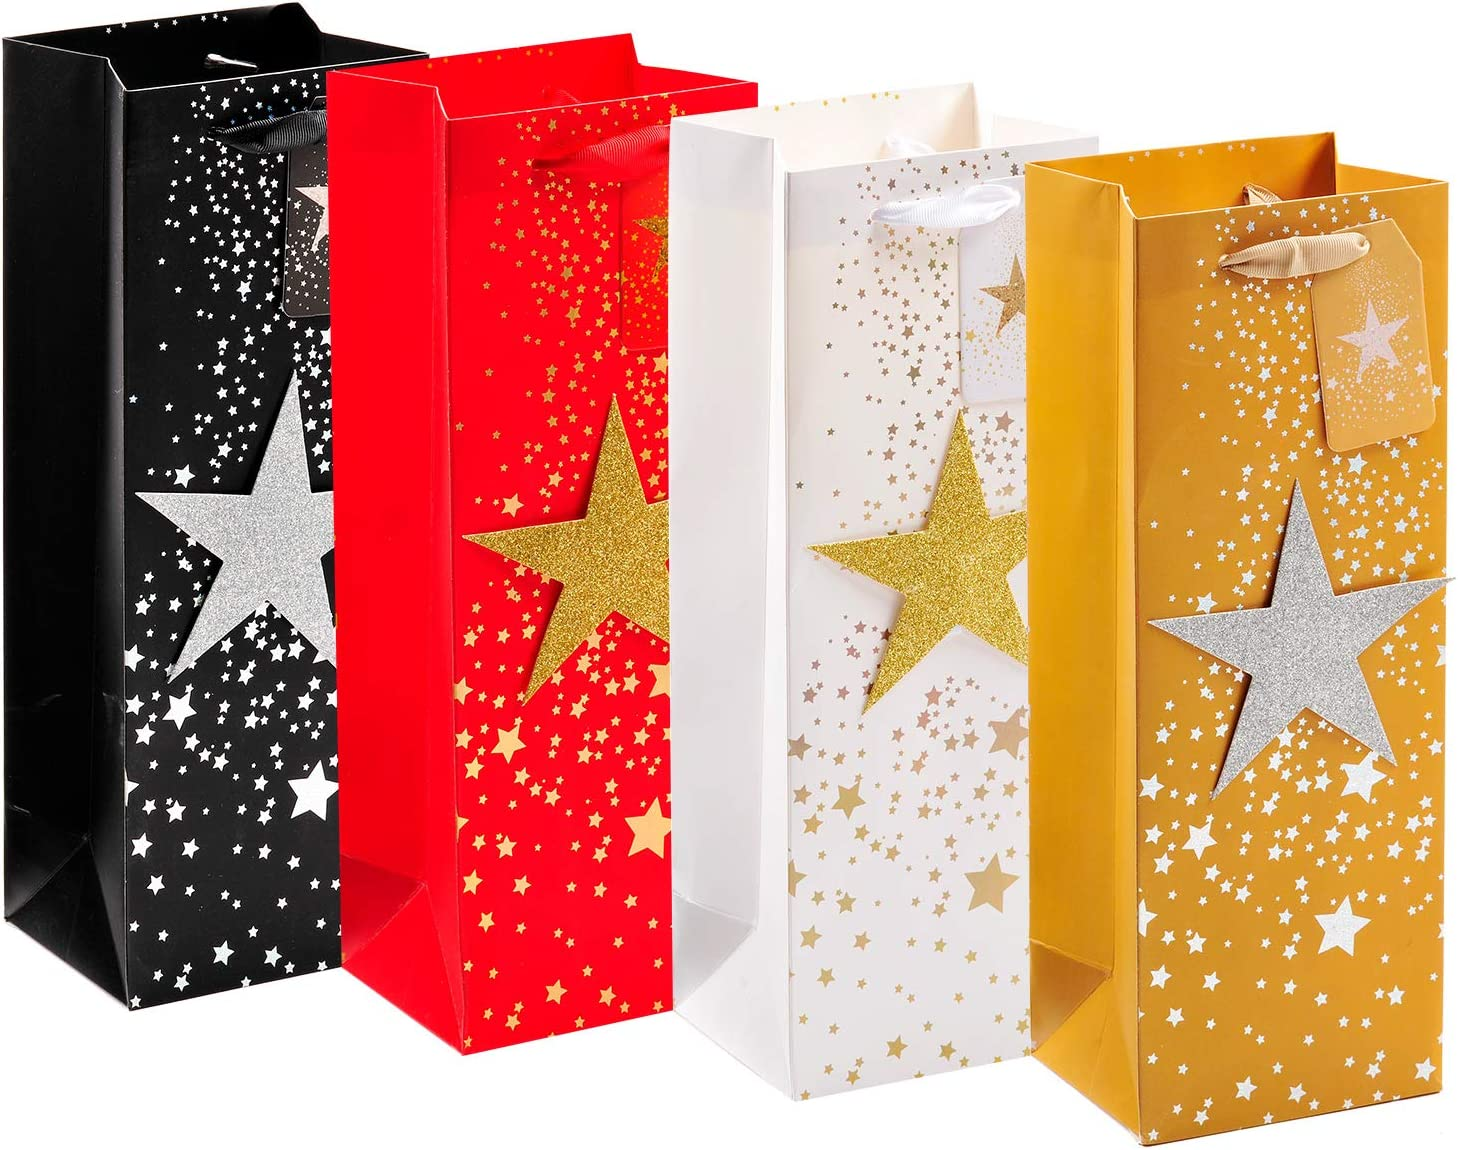 4 Pack Wine Gift Bags for Christmas, Bling Bottle Gift Bags with Stars for Thanks-giving Day, Wine Wrapping Bags with Handles, Paper Gift Bags for Holiday, Wine Bottle Bags for Home Table Party(Stars)